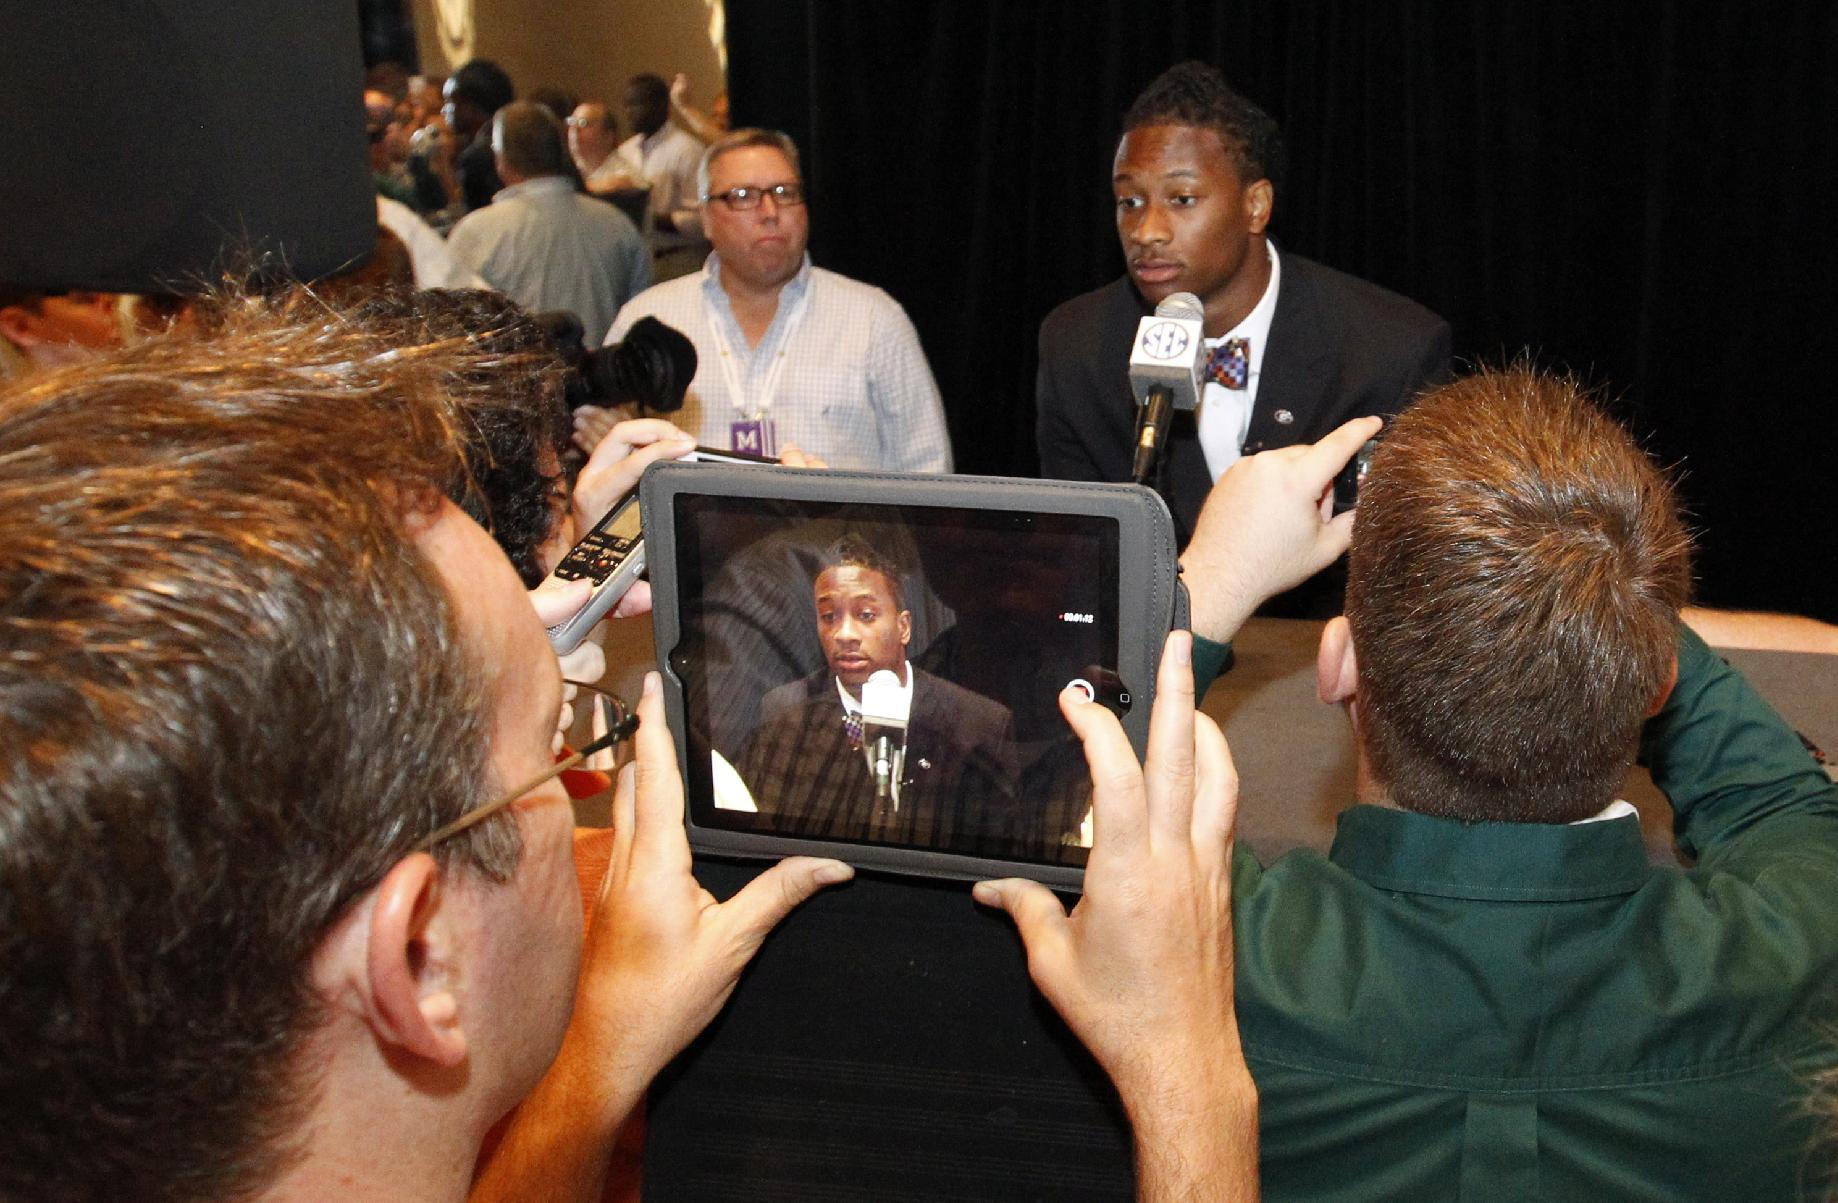 Georgia tailback Todd Gurley speaks to the media at the Southeastern Conference NCAA college football media days, Thursday, July 17, 2014, in Hoover, Ala